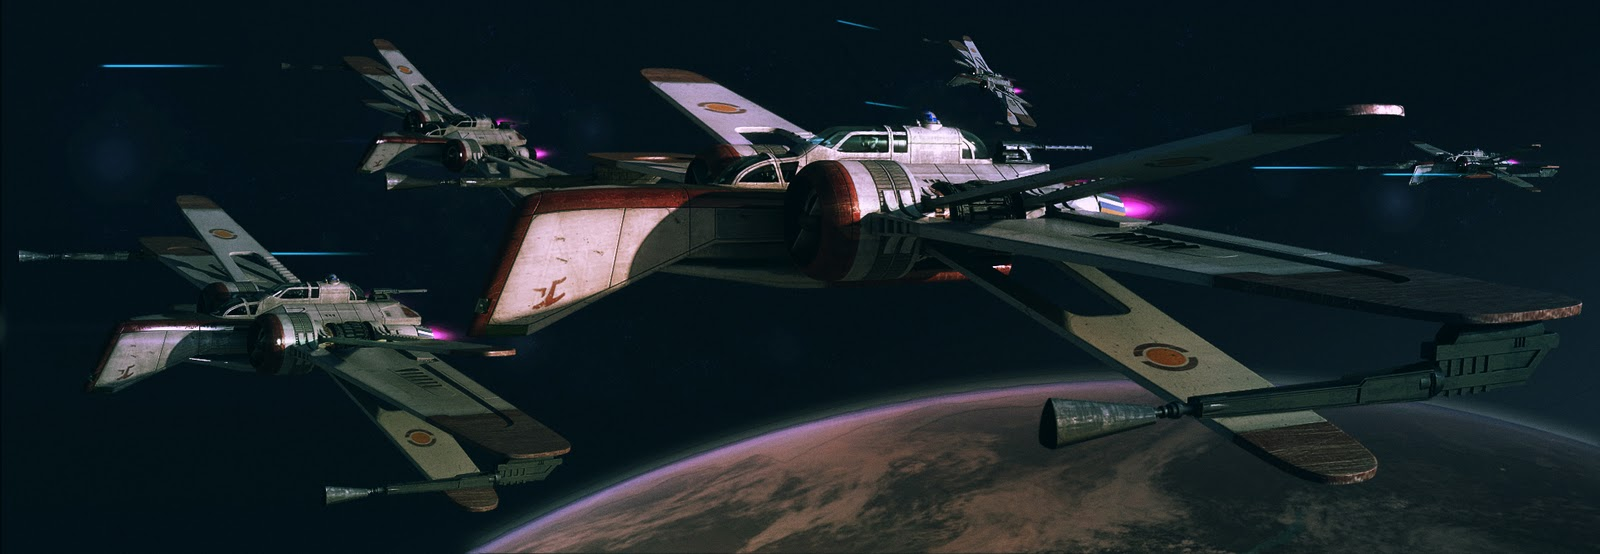 Arc 170 Starfighter 3dtotal Forums